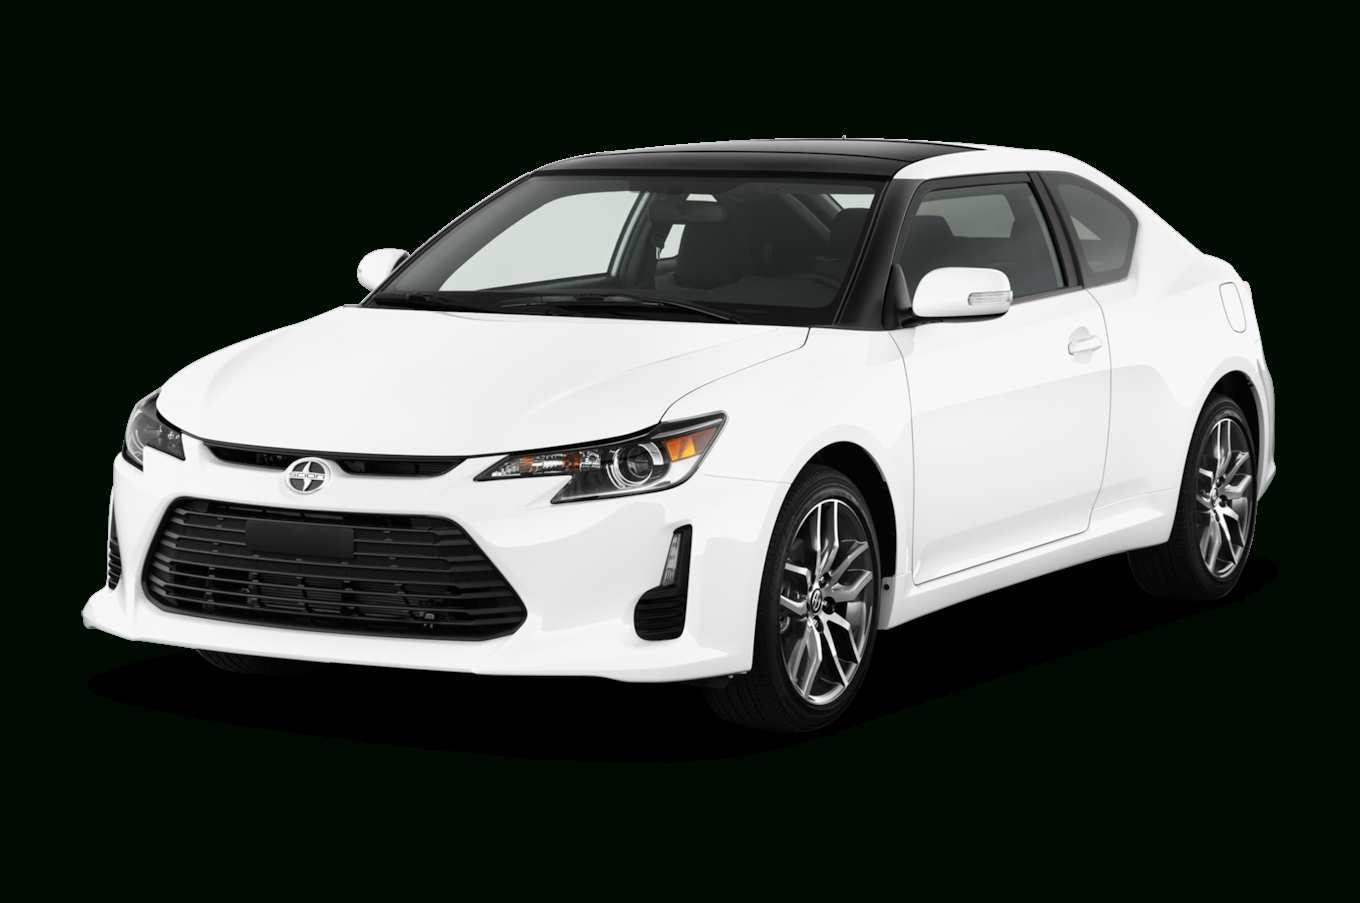 43 Great 2020 Scion Tced Spesification by 2020 Scion Tced